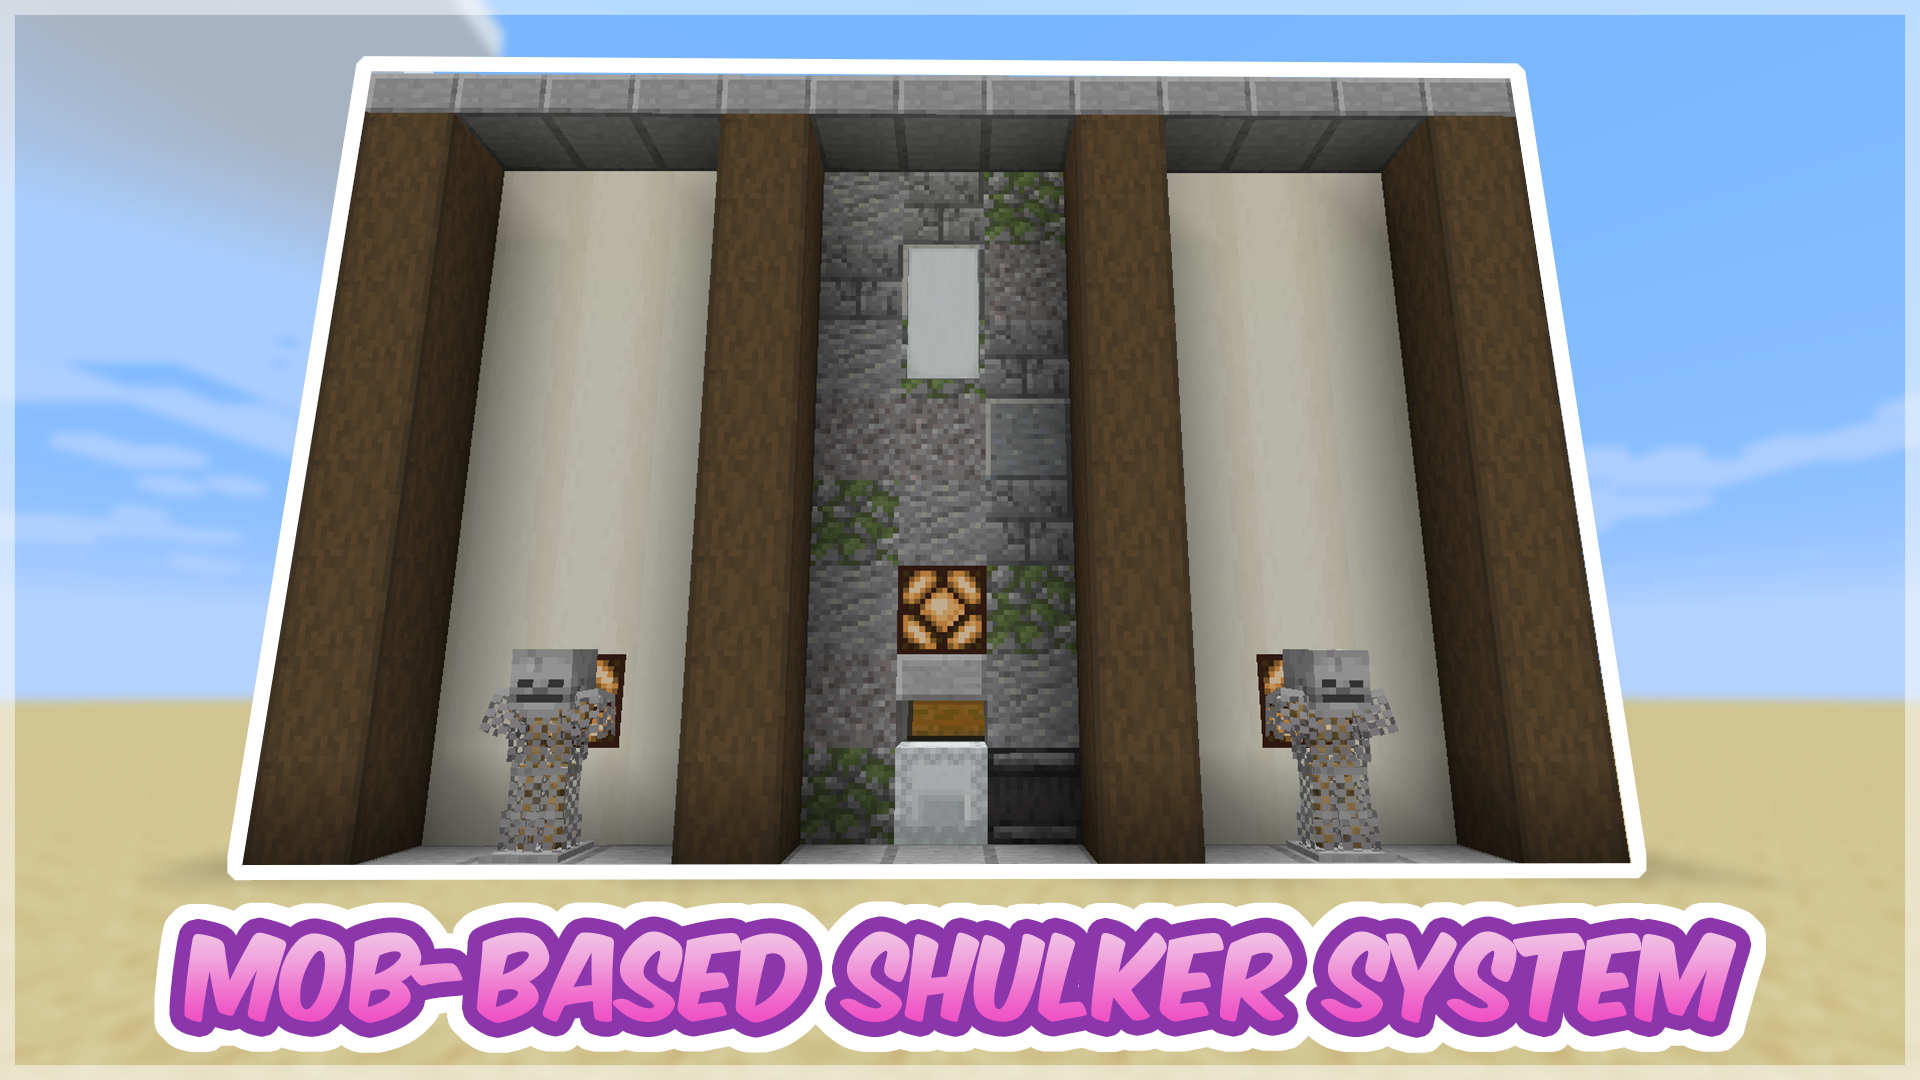 Mob-Based Shulker Storage System Tutorial - Perfect for Mob Farms